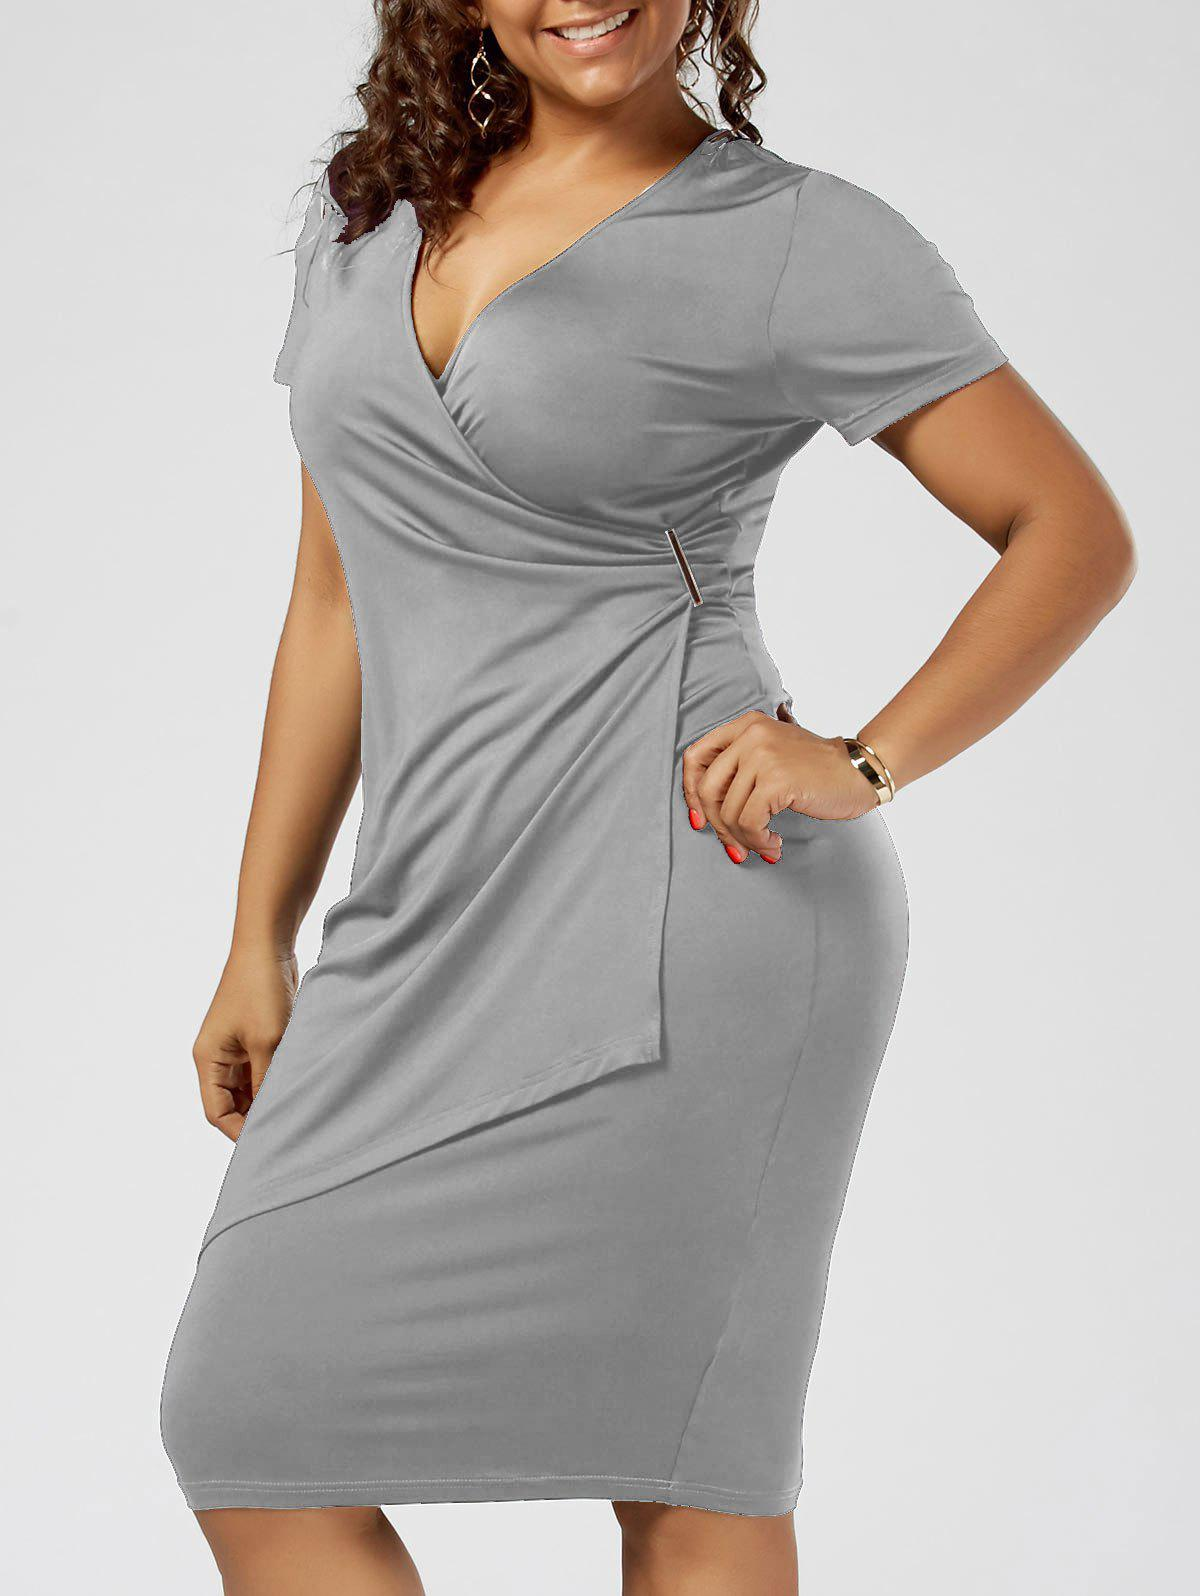 Plus Size Overlap Plain Tight Surplice V Neck Sheath DressWOMEN<br><br>Size: 3XL; Color: LIGHT GRAY; Style: Brief; Material: Polyester,Spandex; Silhouette: Sheath; Dresses Length: Knee-Length; Neckline: V-Neck; Sleeve Length: Short Sleeves; Pattern Type: Solid Color; With Belt: No; Season: Summer; Weight: 0.3200kg; Package Contents: 1 x Dress;